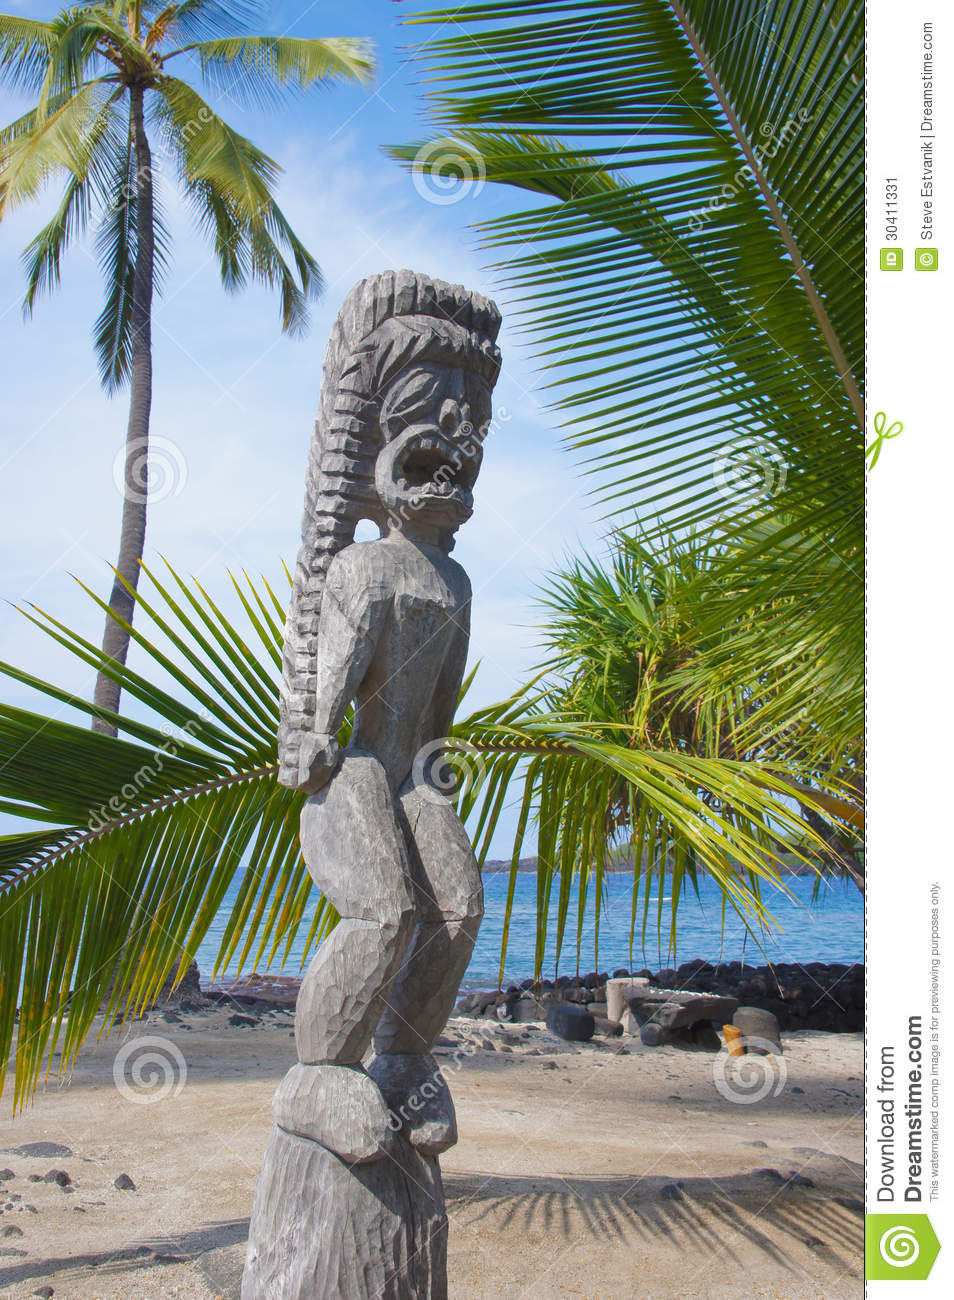 Carved wooden statue of ancient Hawaiian god